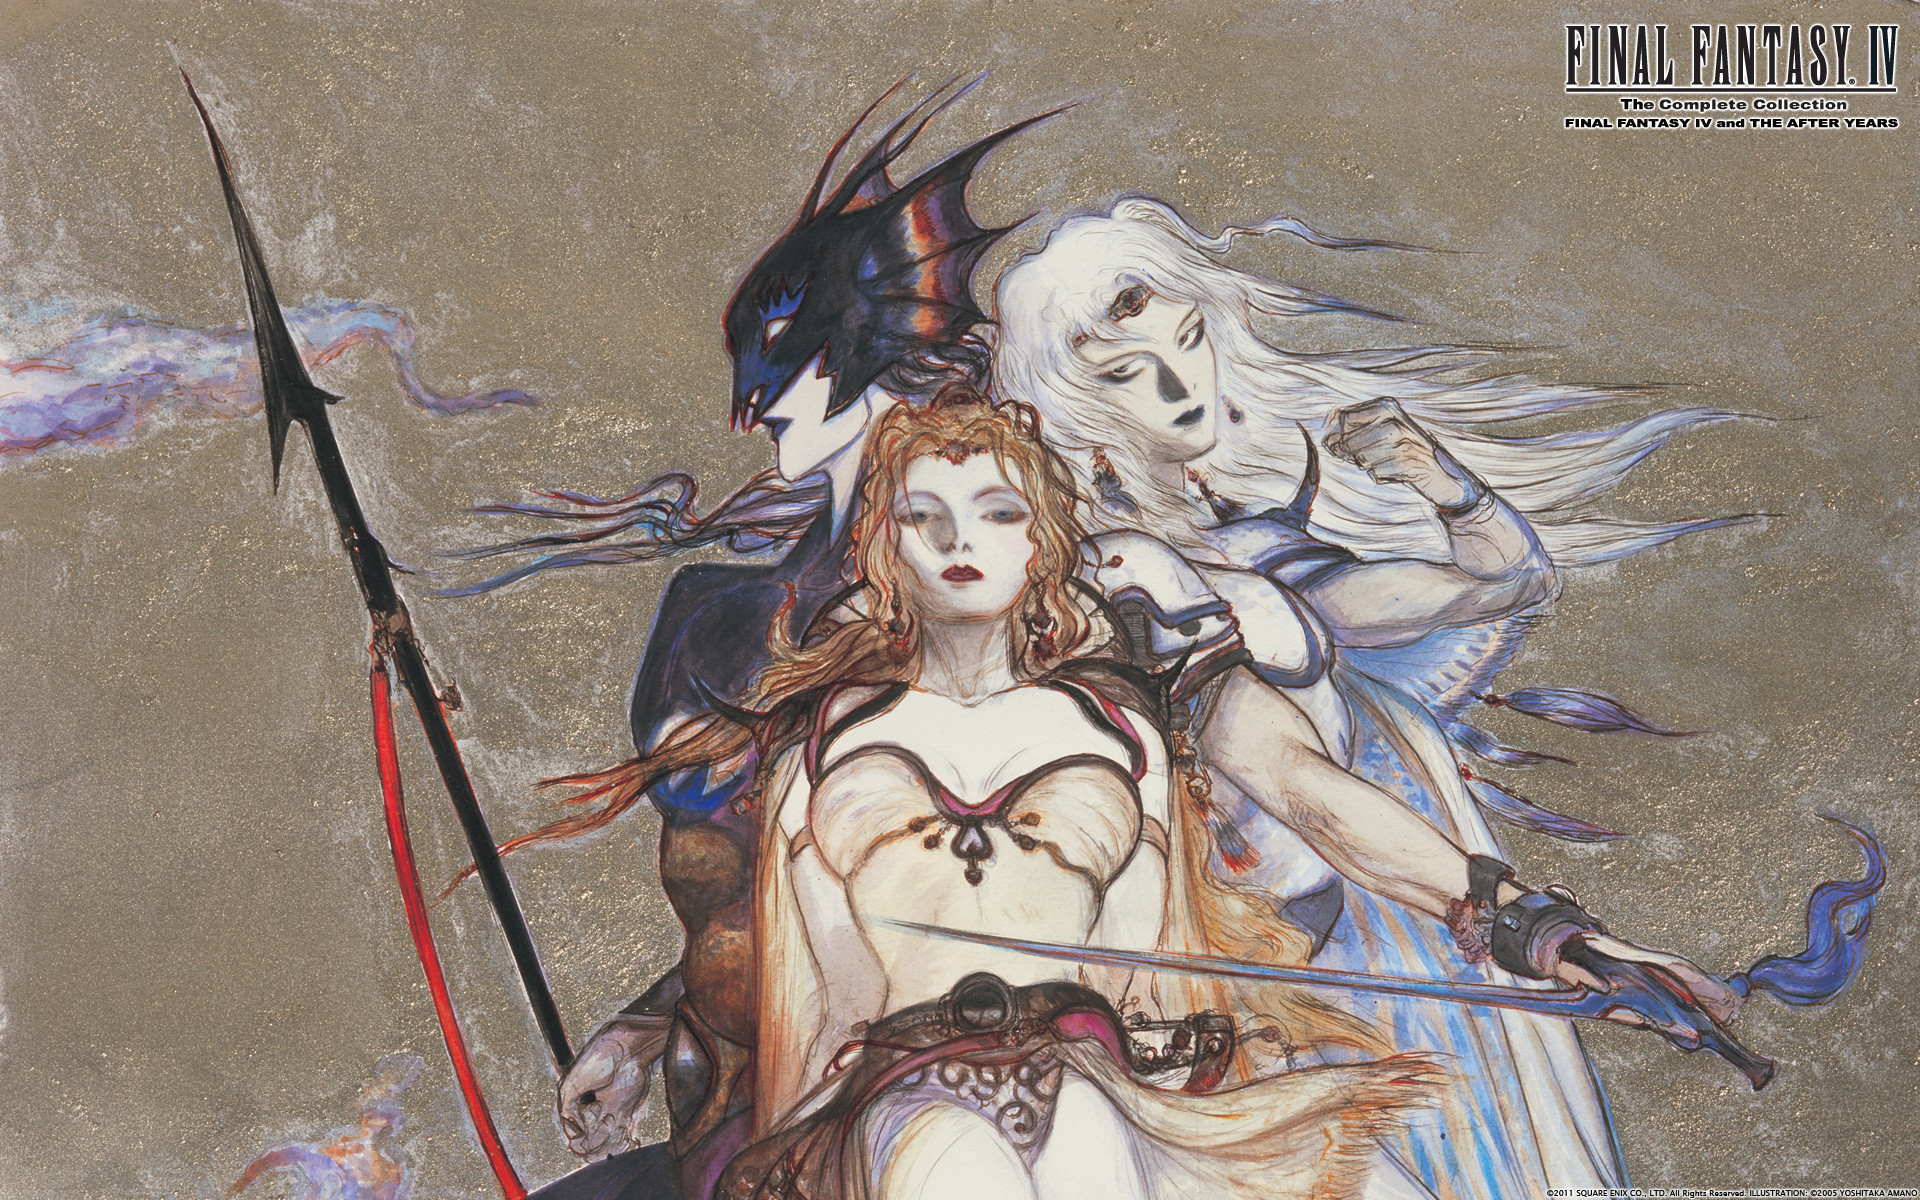 1920x1200 Video Game - Final Fantasy IV Cecil Harvey Kain Highwind Rosa Joanna  Farrell Wallpaper